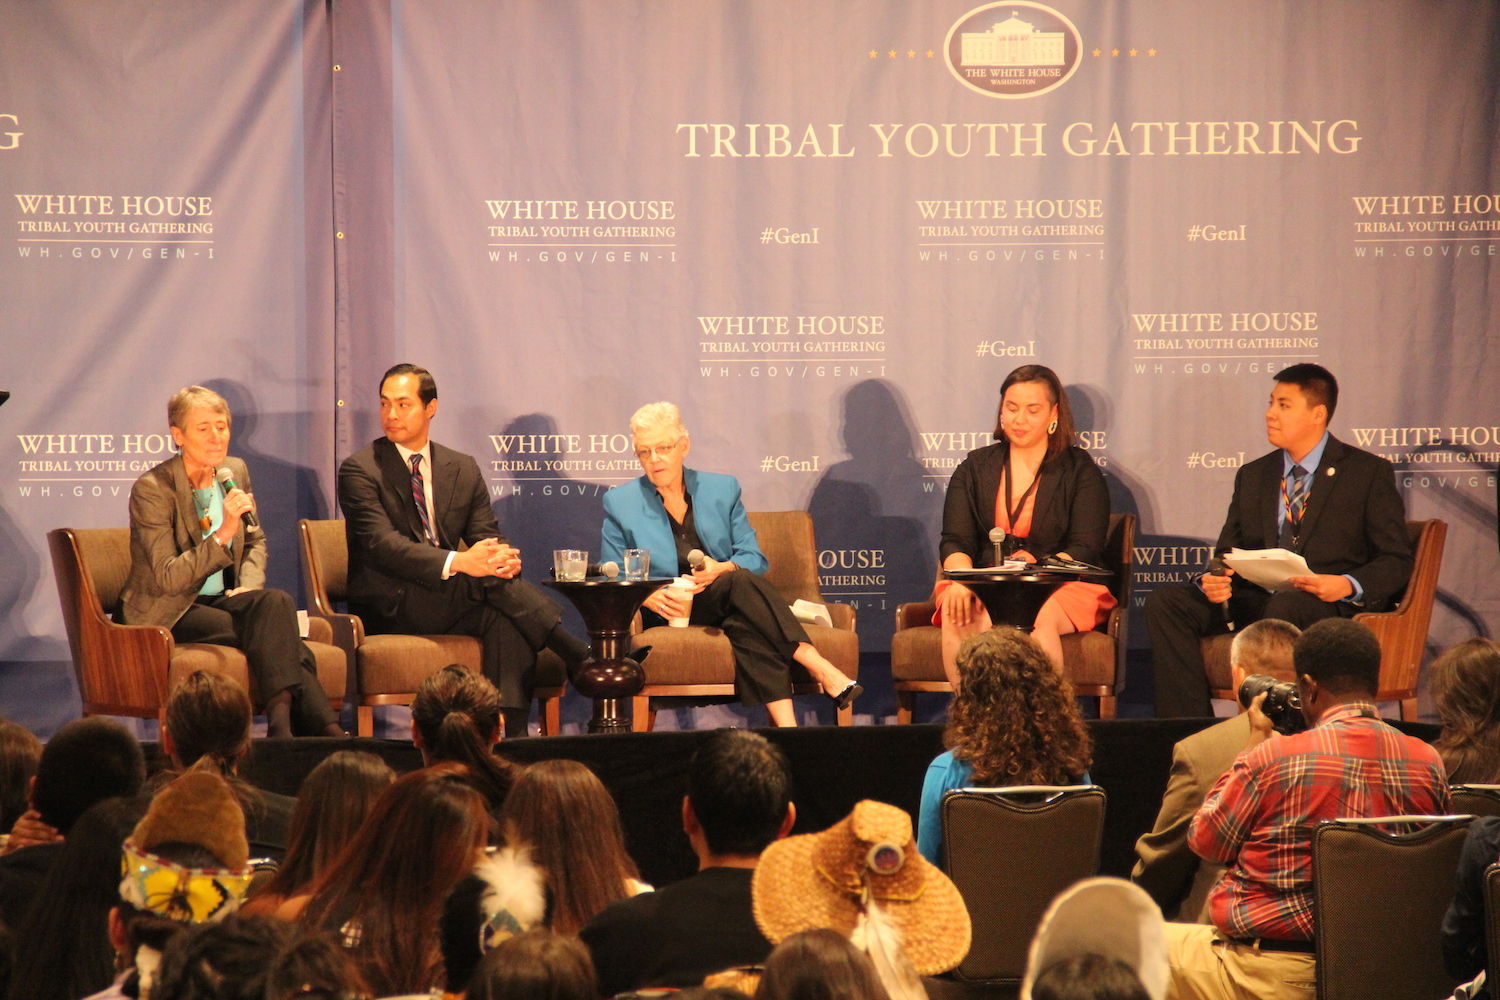 Native youth hear from top officials at historic White House event